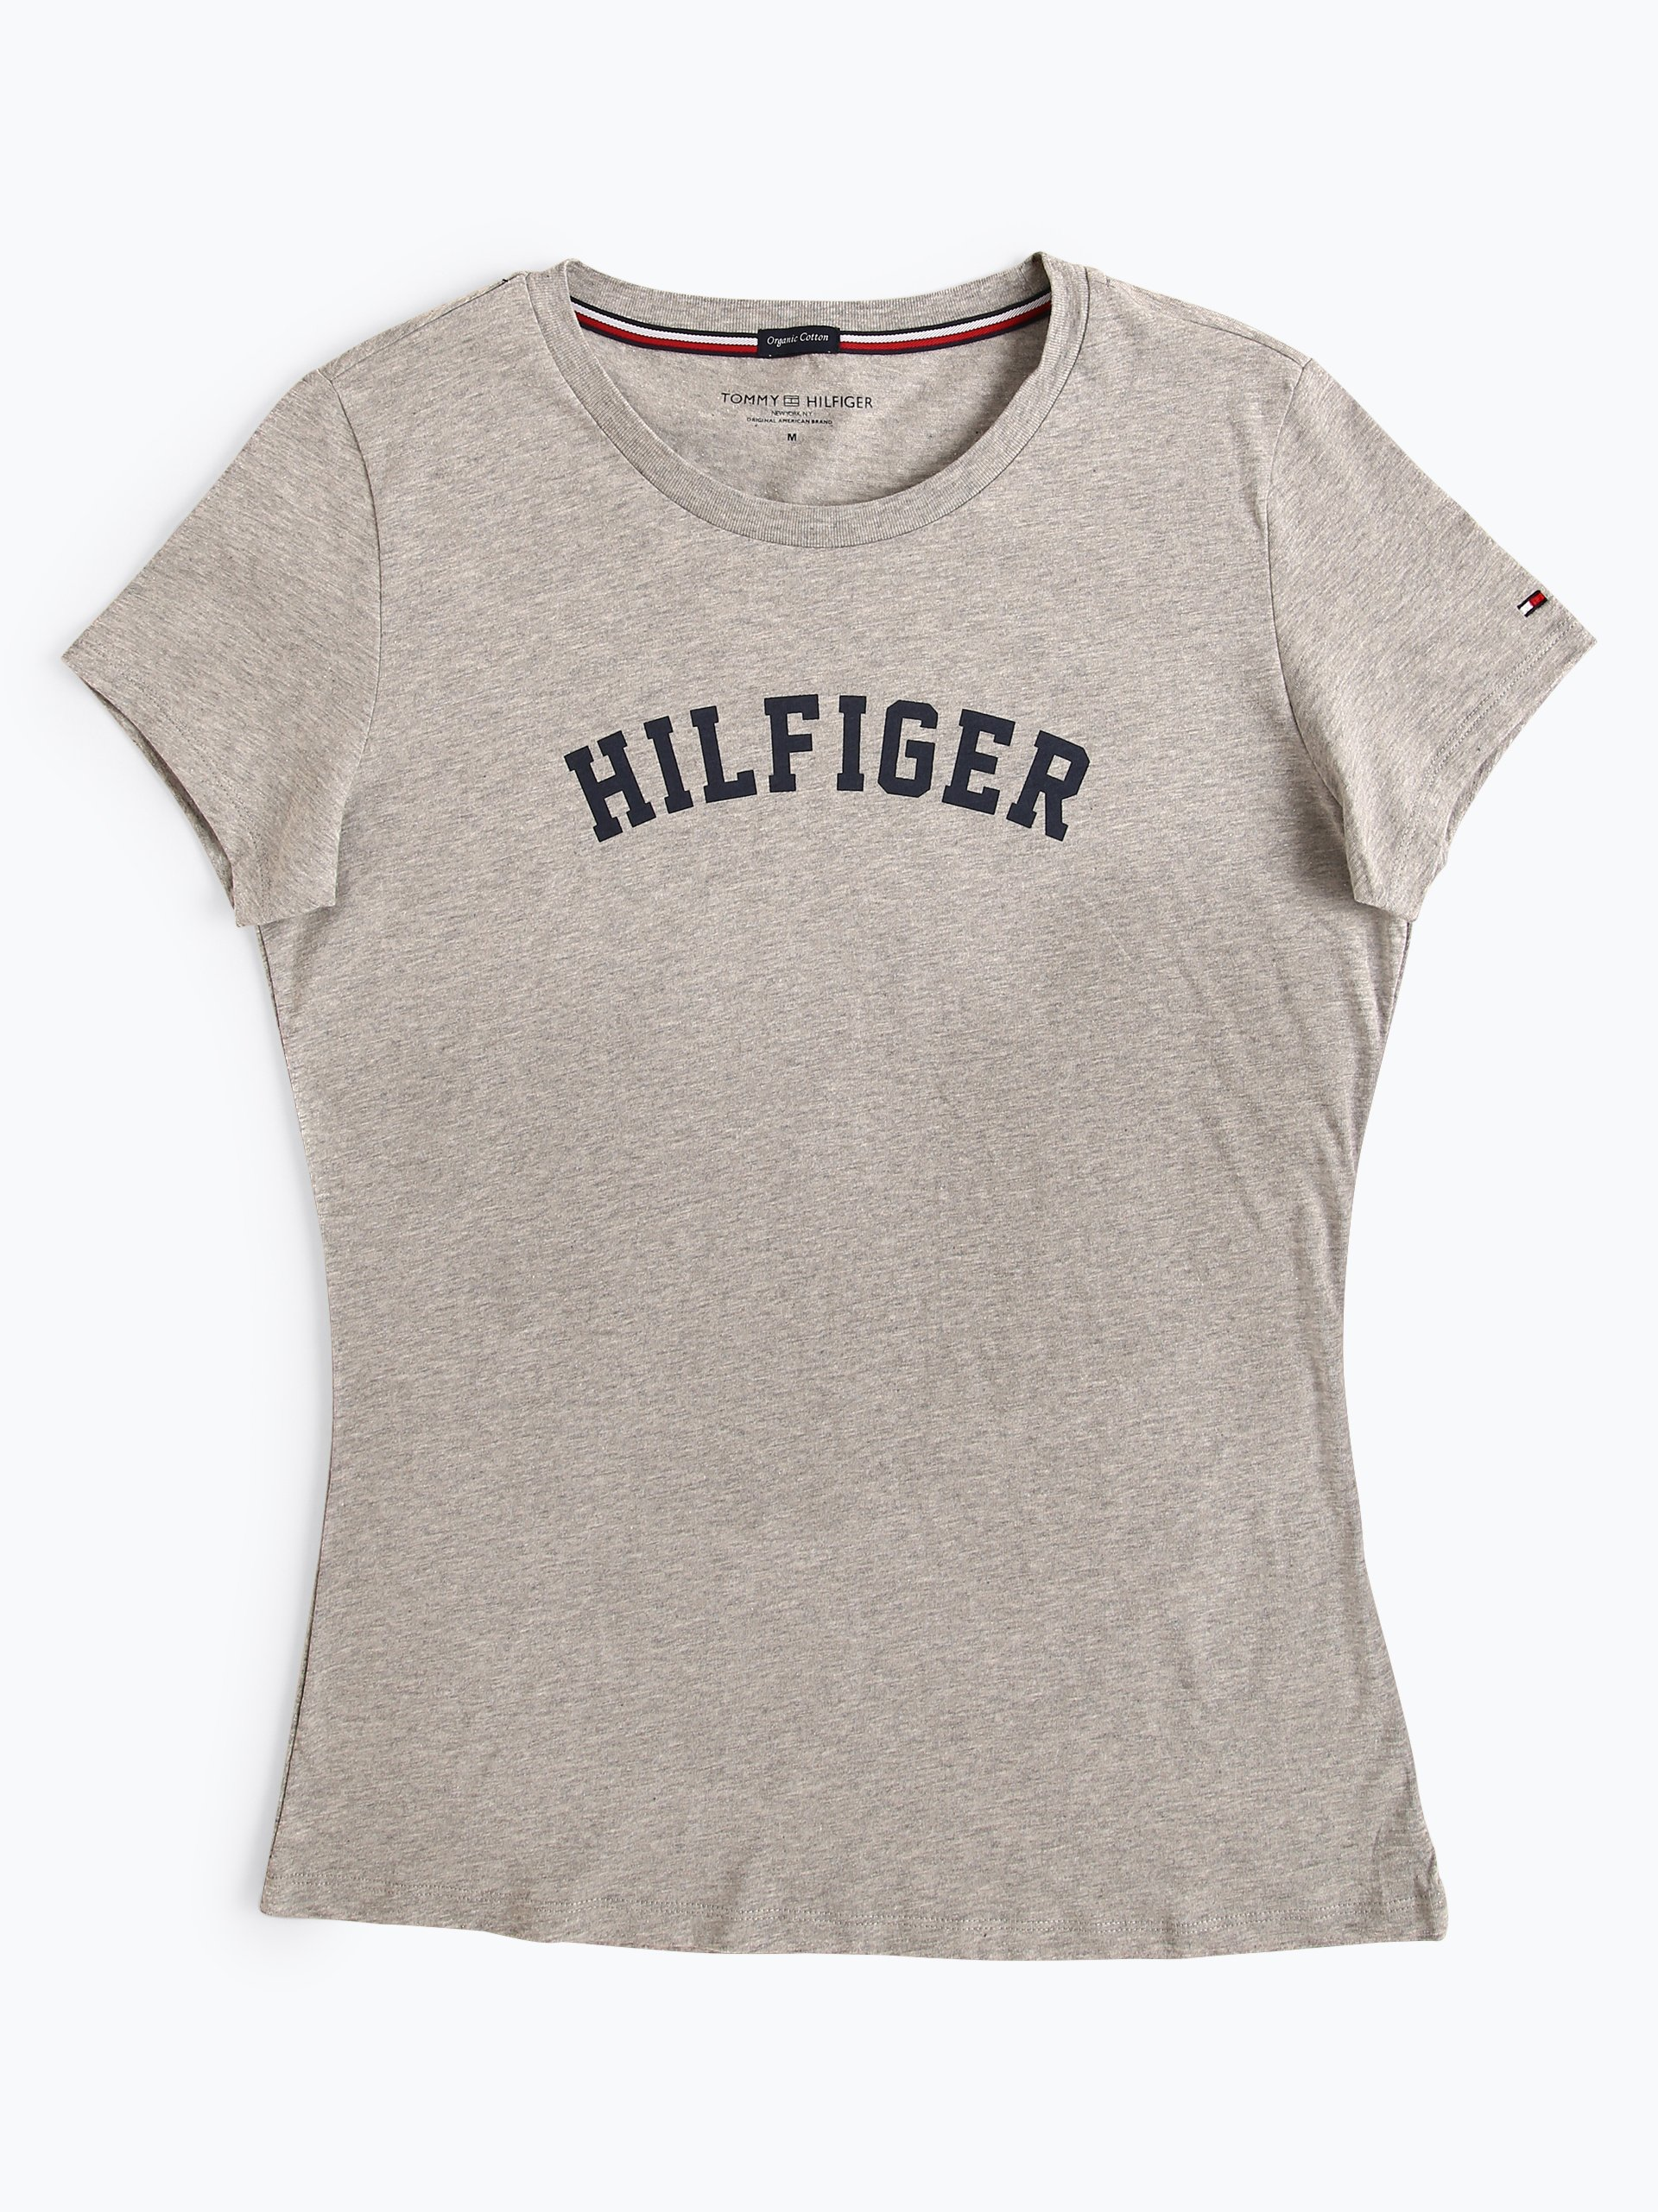 tommy hilfiger damen t shirt online kaufen peek und. Black Bedroom Furniture Sets. Home Design Ideas